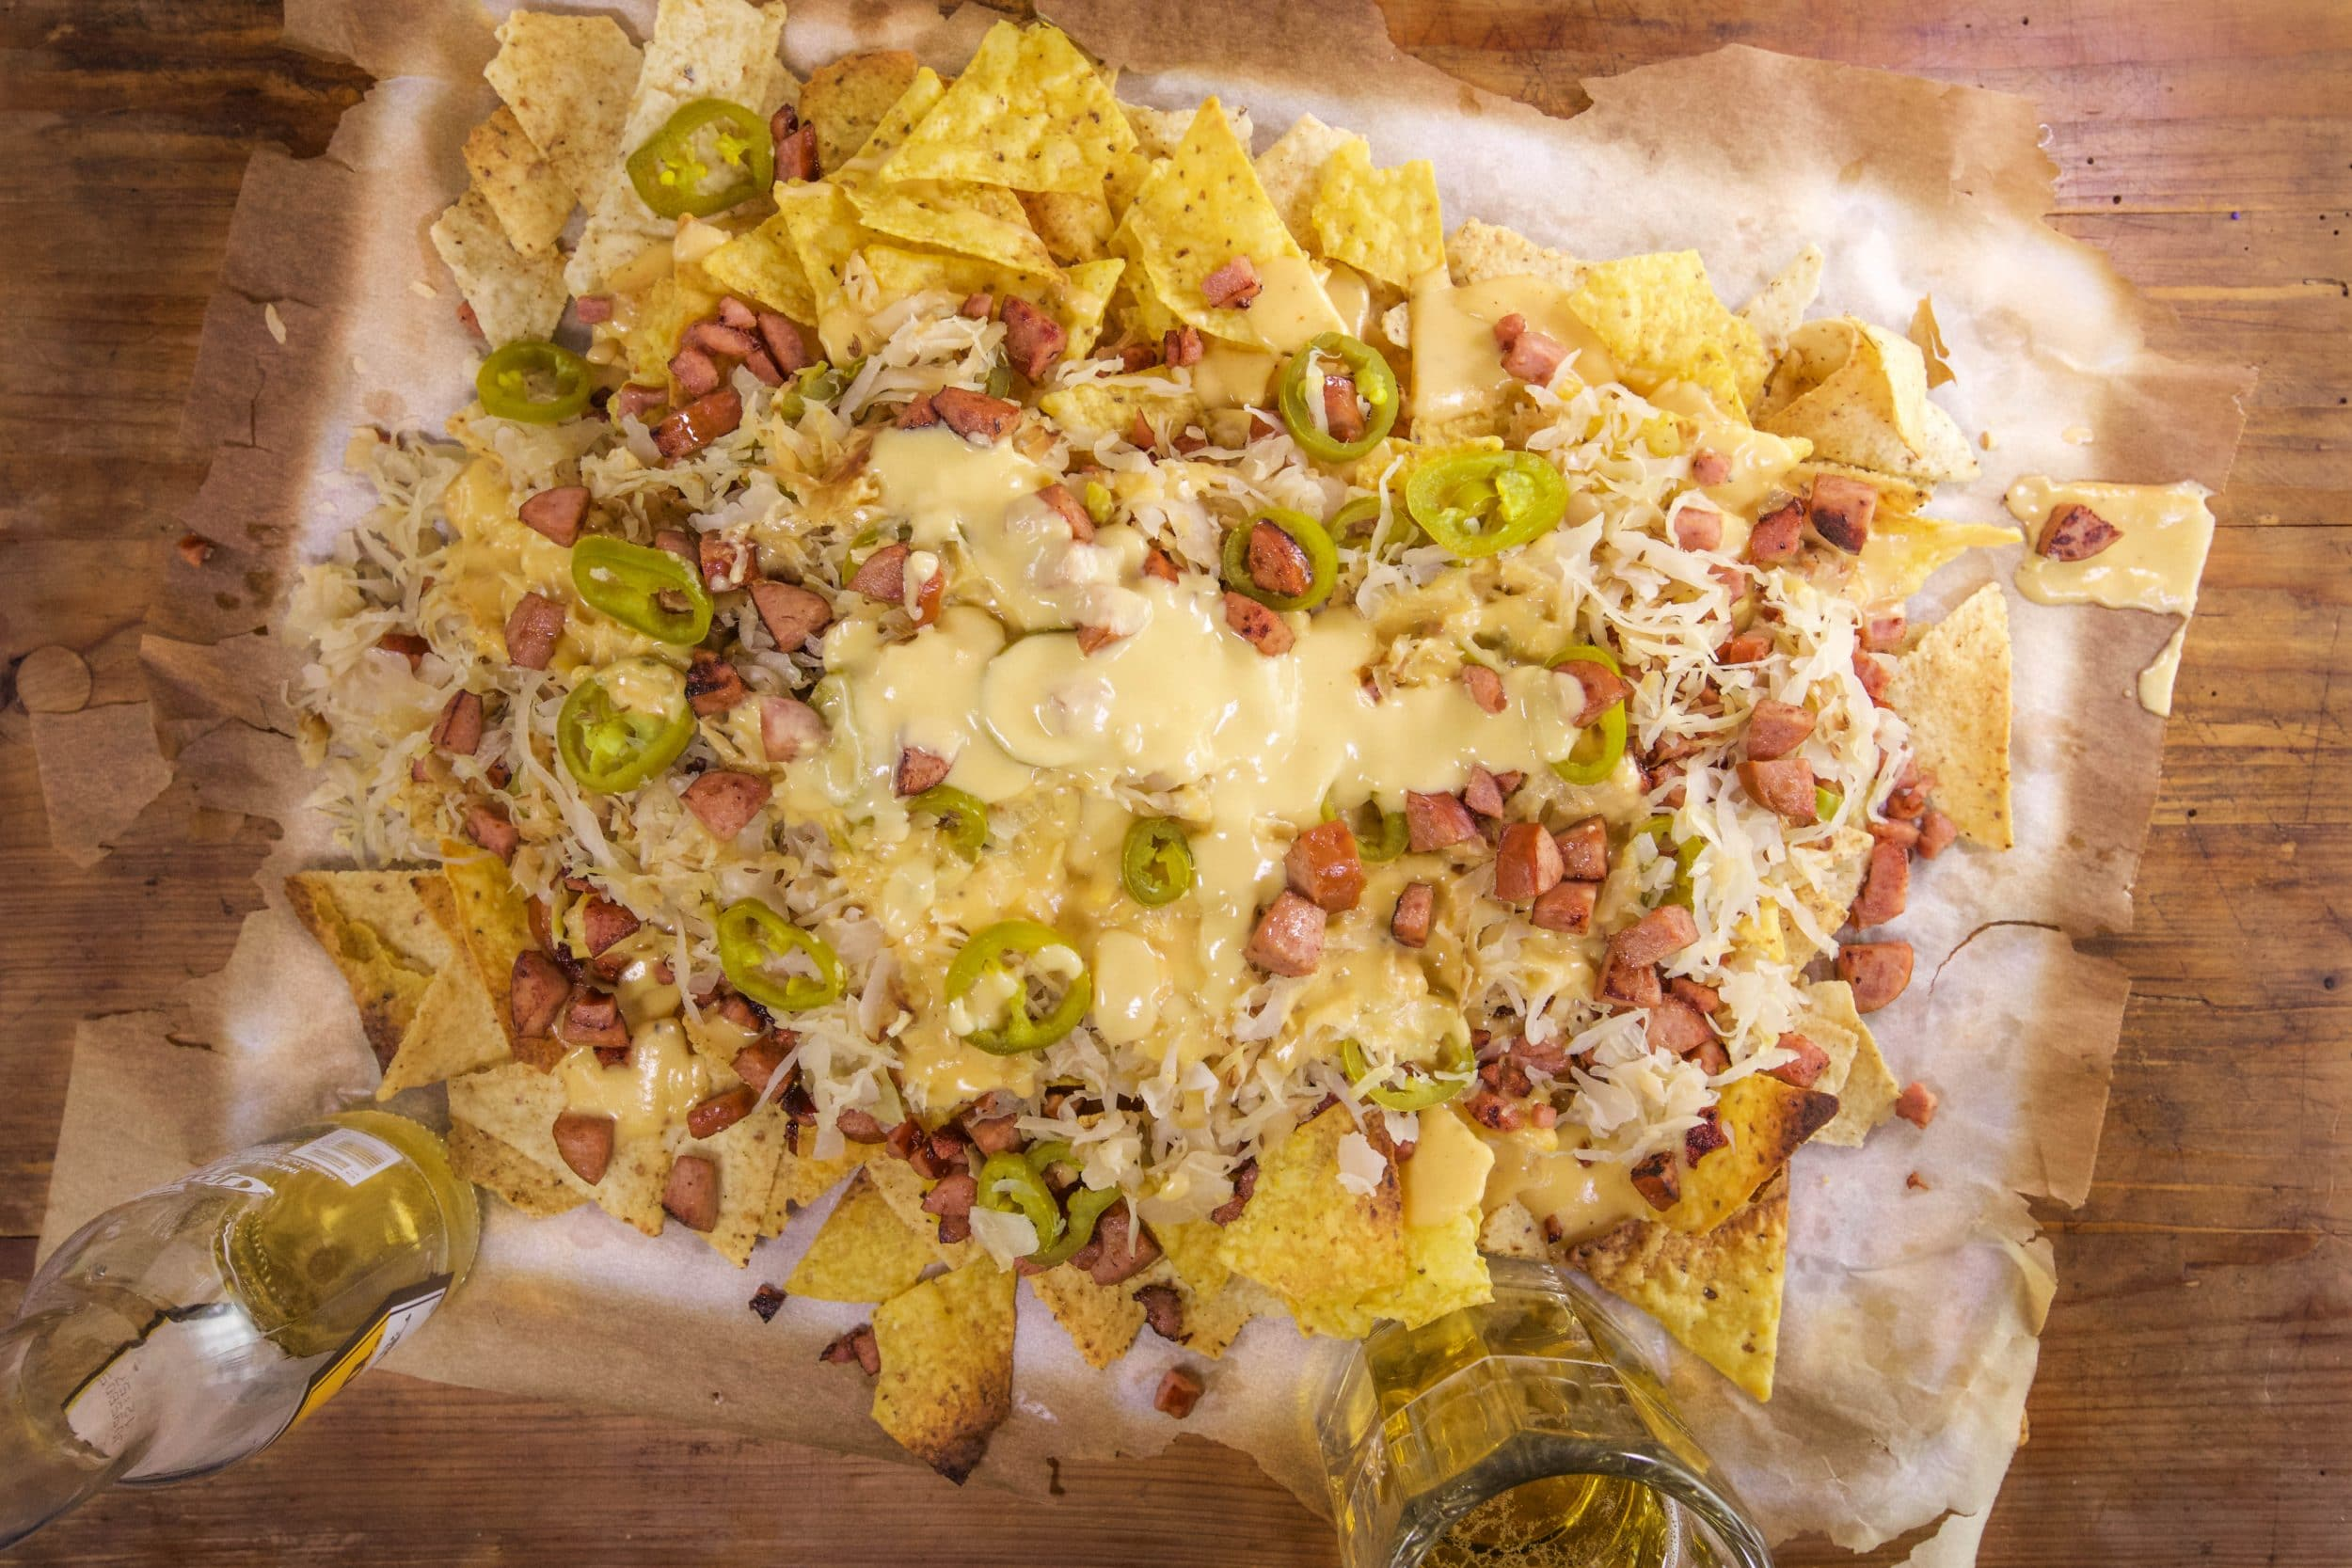 Kielbasa Nachos with Beer Cheese and 'Kraut